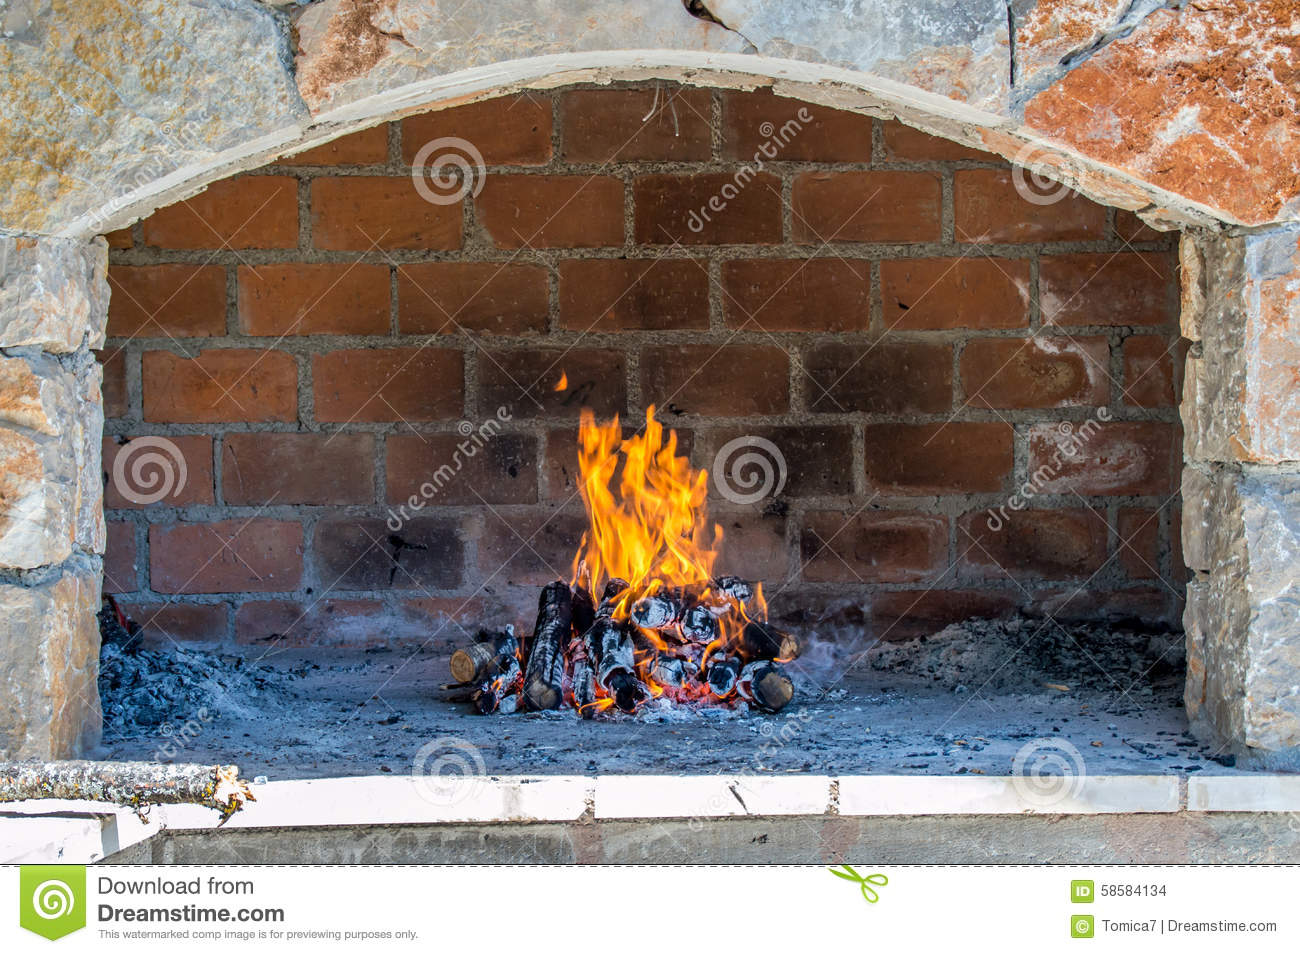 Open fire place oven stock photo. Image of cooking, lamb ...